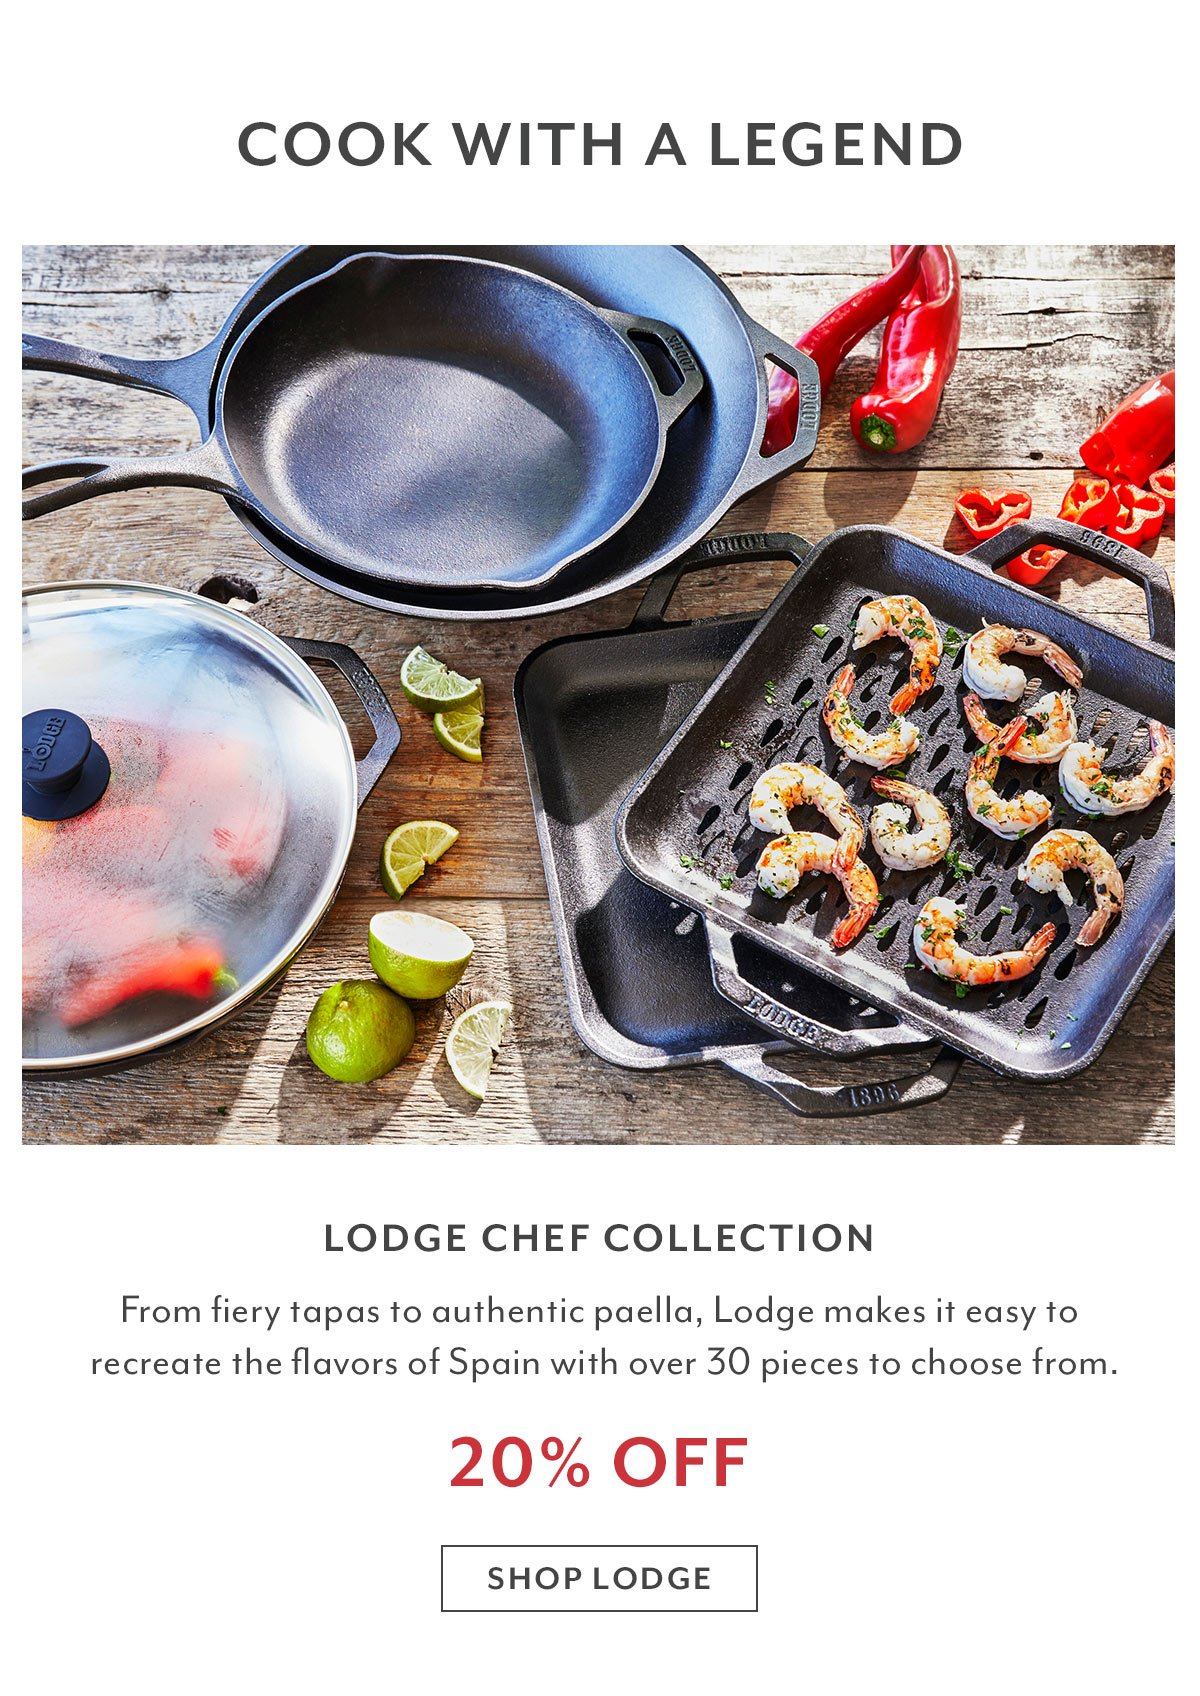 Lodge Chef Collection